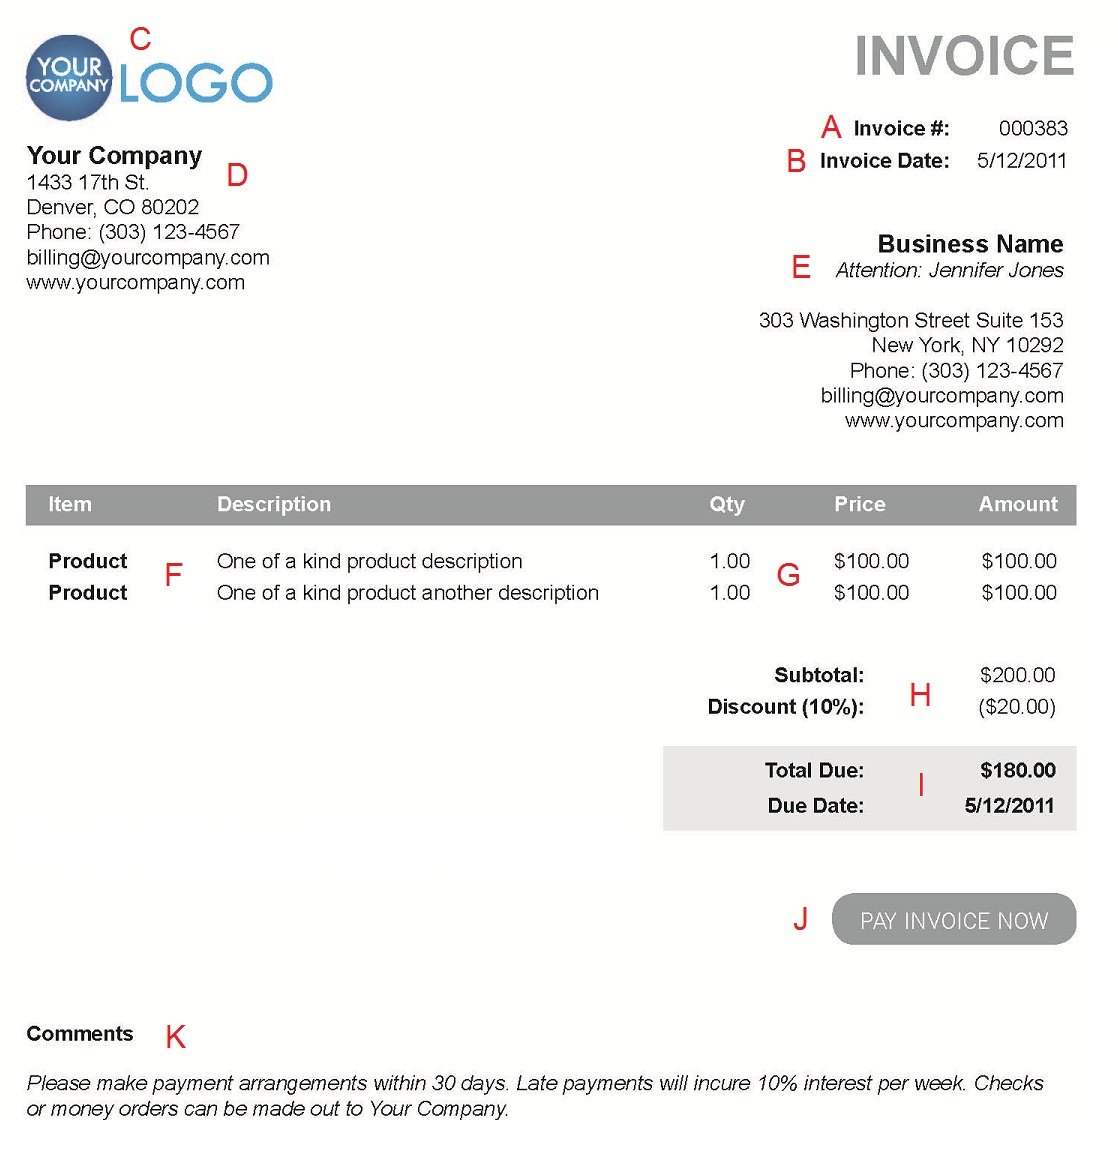 Centralasianshepherdus  Fascinating The  Different Sections Of An Electronic Payment Invoice With Exquisite A  With Cool How To Complete An Invoice Also Invoice Payment Details In Addition Template For Tax Invoice And Difference Between Invoice And Proforma Invoice As Well As Free Google Invoice Template Additionally Find Invoice Price Of New Car By Vin From Paysimplecom With Centralasianshepherdus  Exquisite The  Different Sections Of An Electronic Payment Invoice With Cool A  And Fascinating How To Complete An Invoice Also Invoice Payment Details In Addition Template For Tax Invoice From Paysimplecom